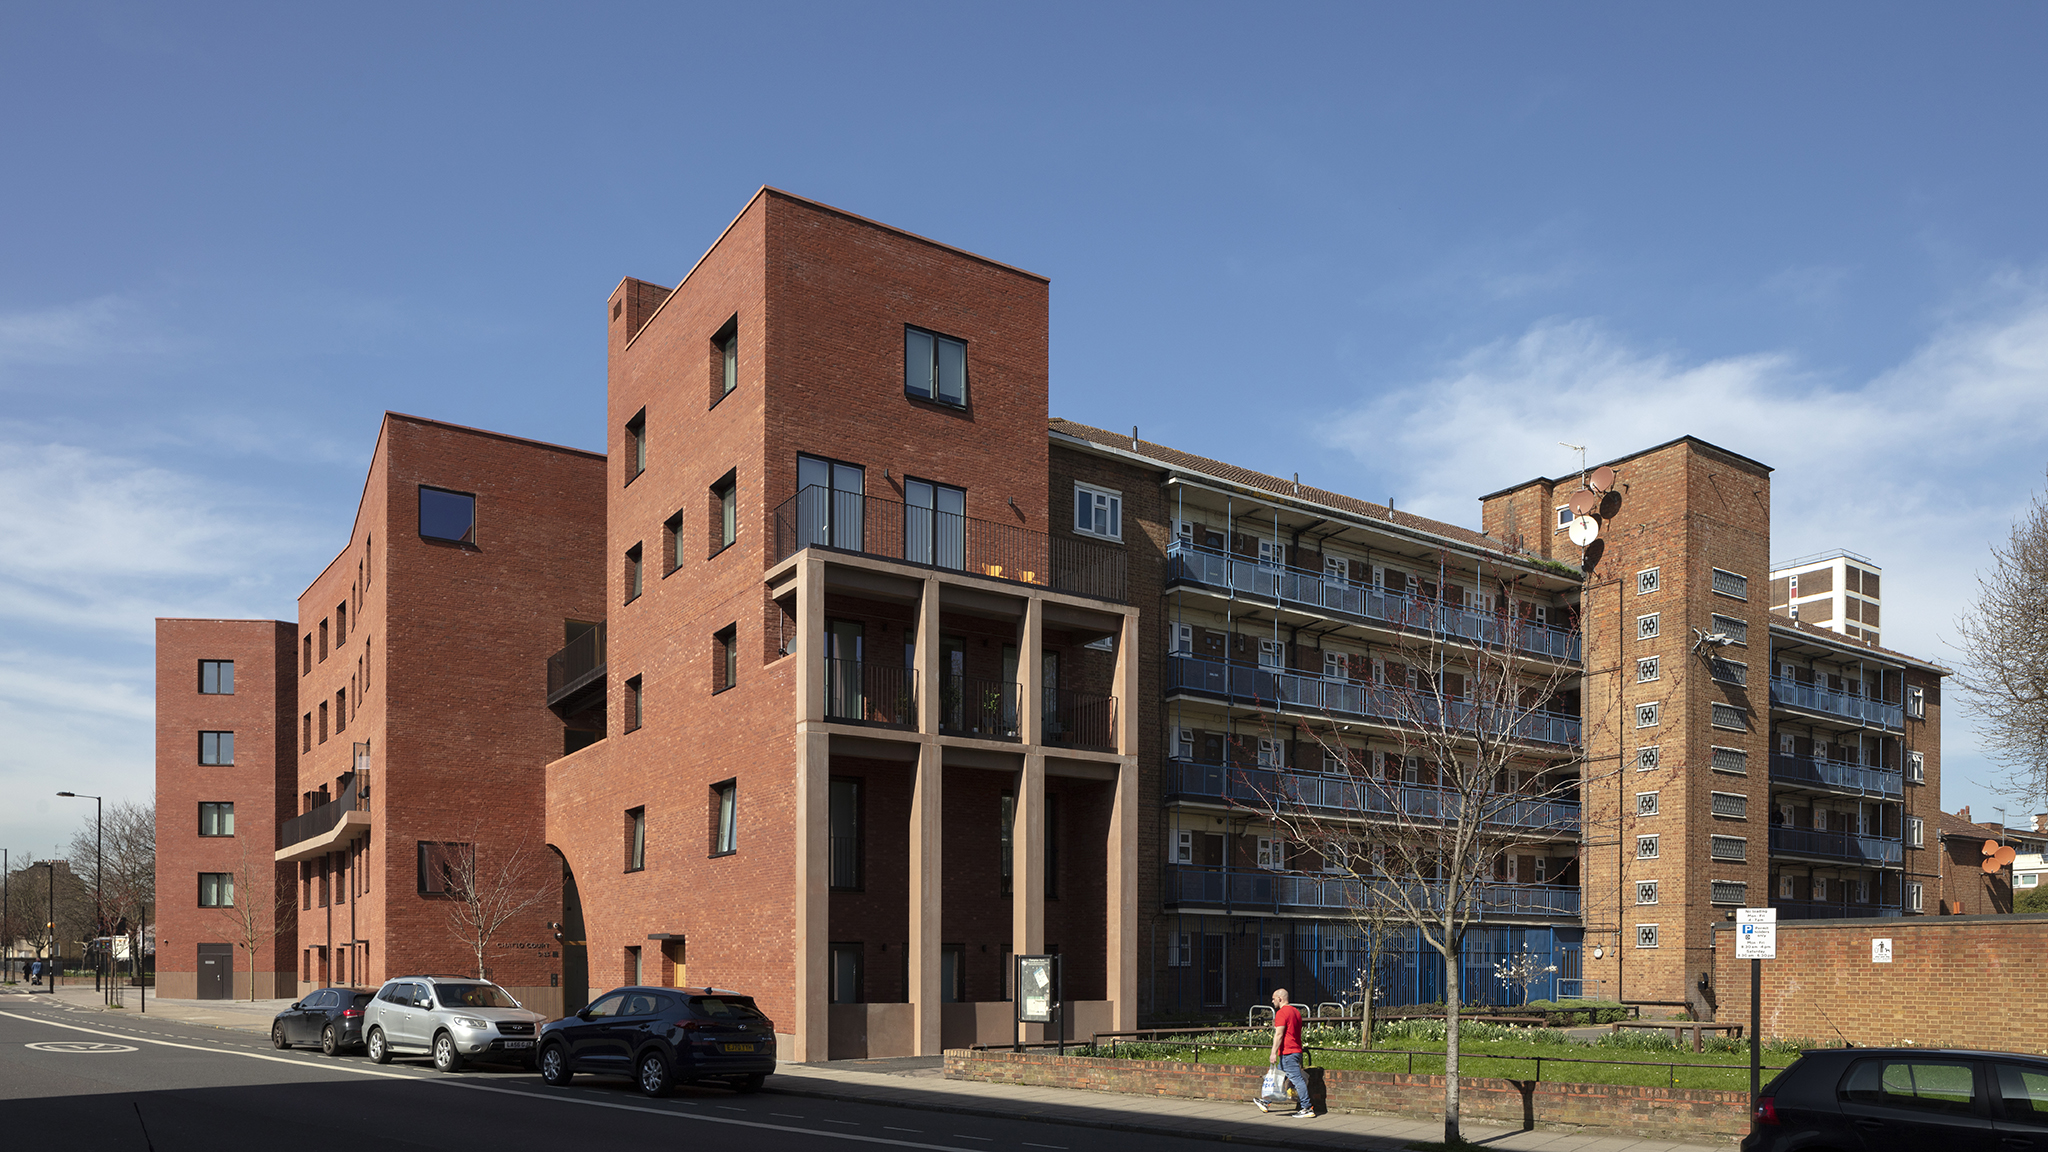 Taylor & Chatto Courts and Wilmott Court, Frampton Park Estate